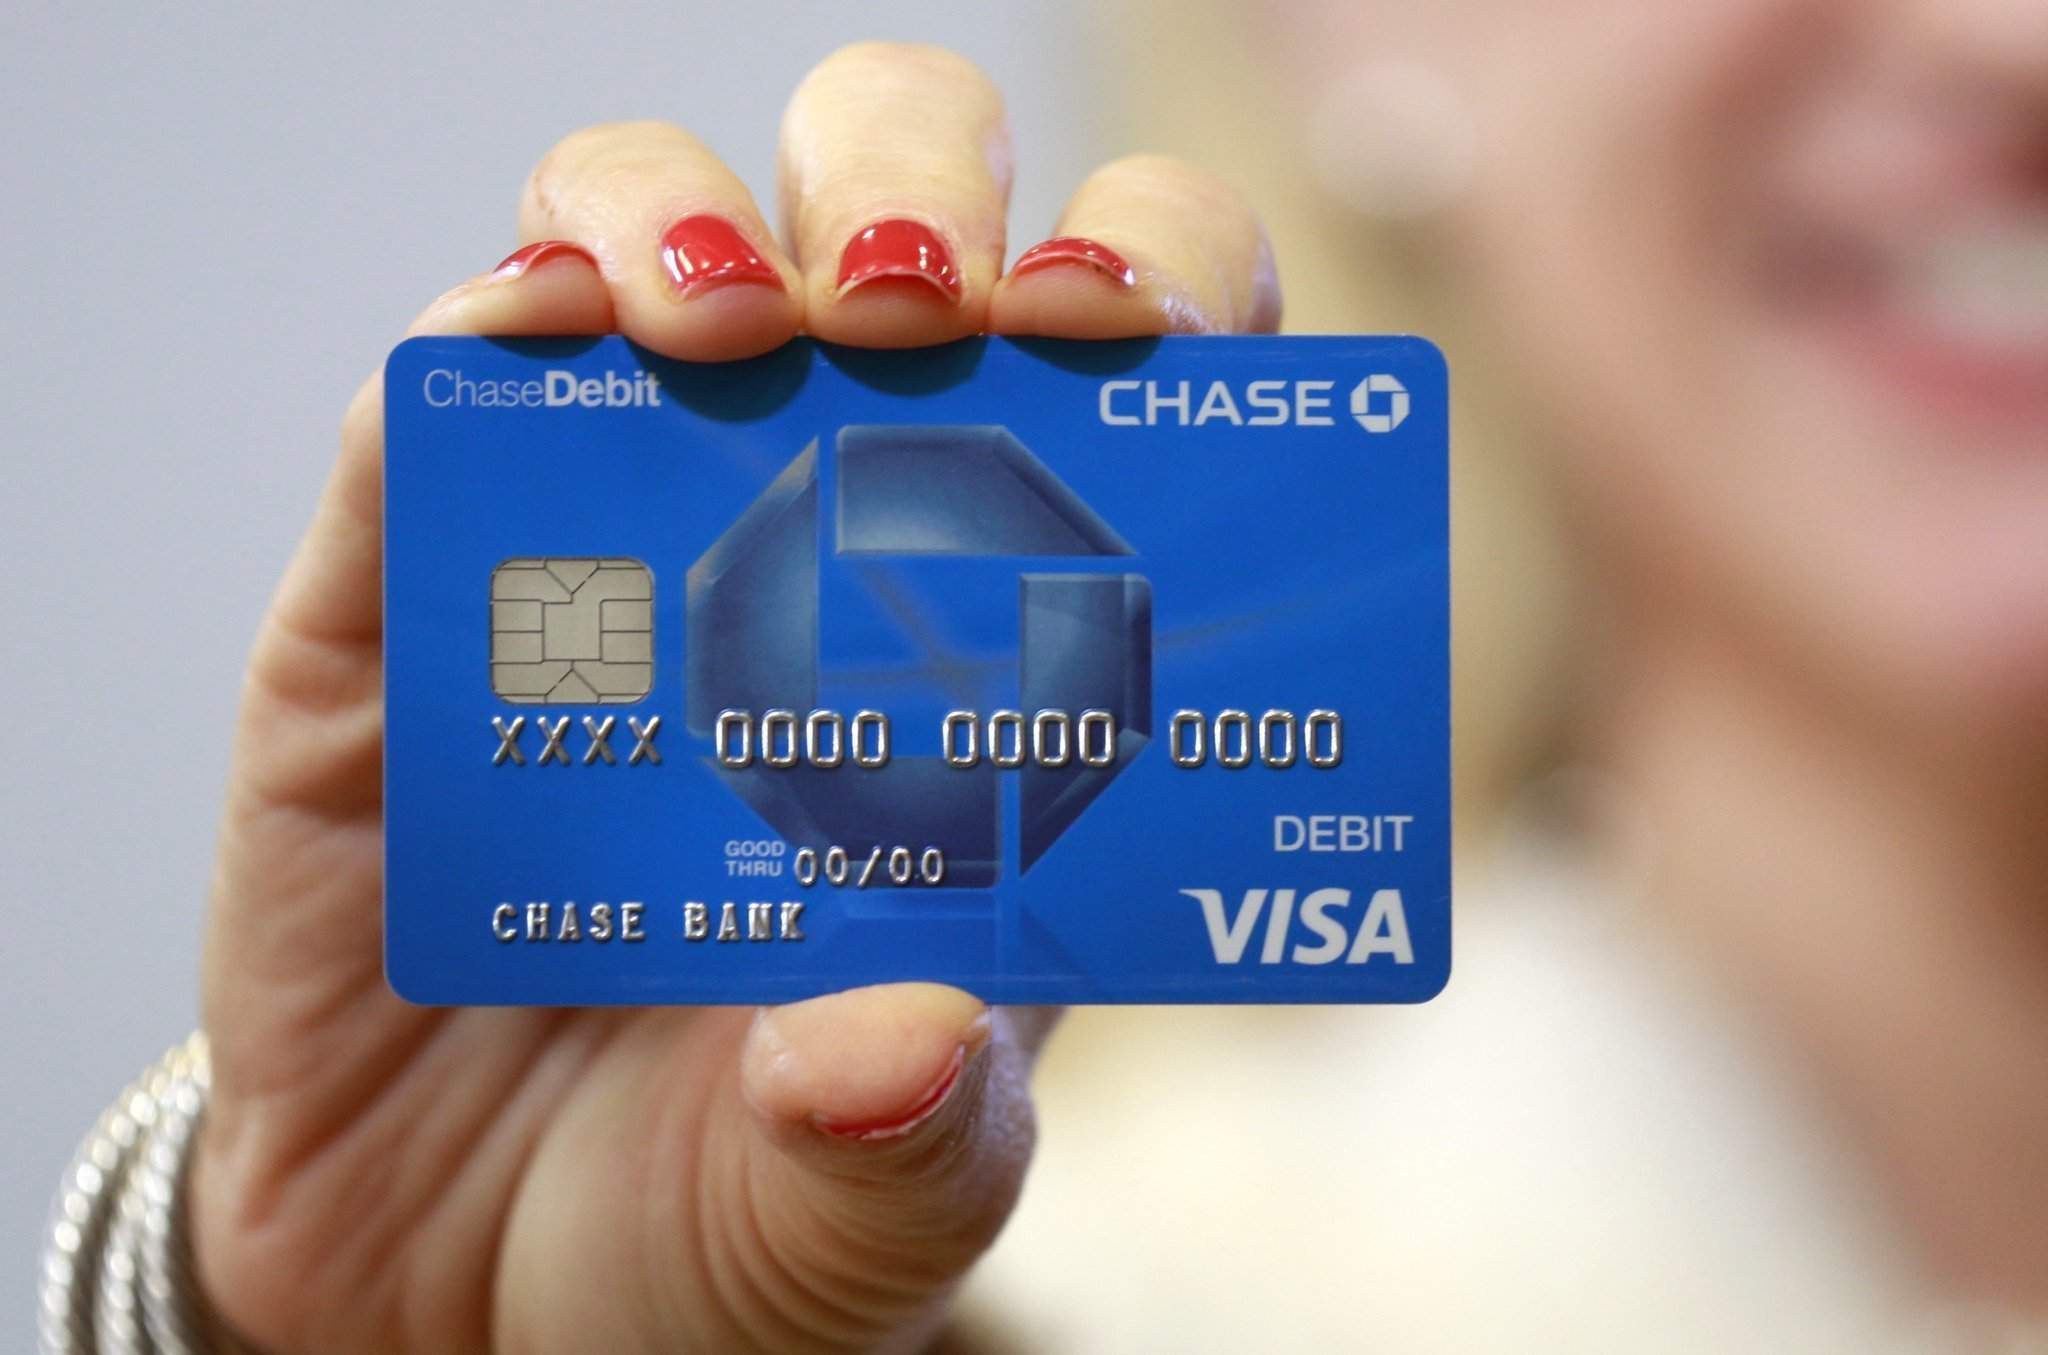 The Erica Debit Mastercard1 Is Right For Customers Who